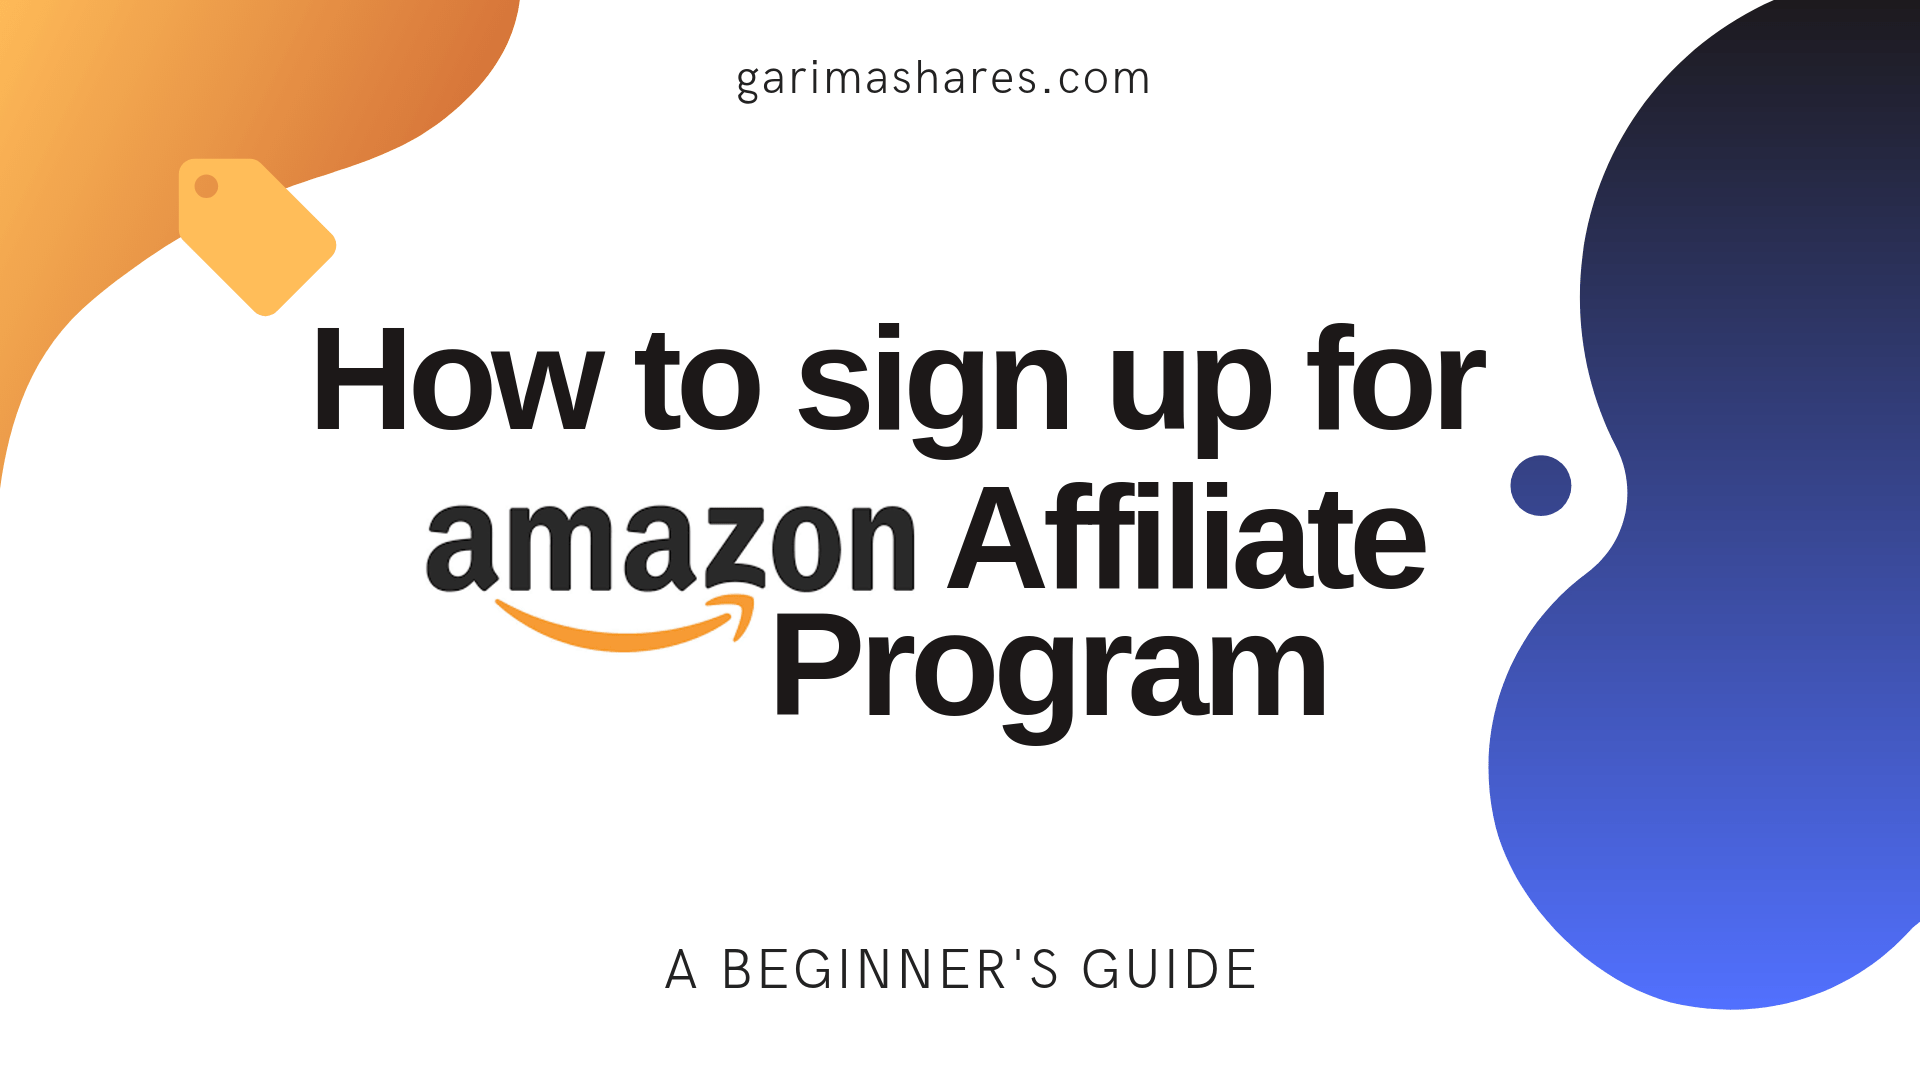 How to Sign Up For Amazon Affiliate Program: A Beginner